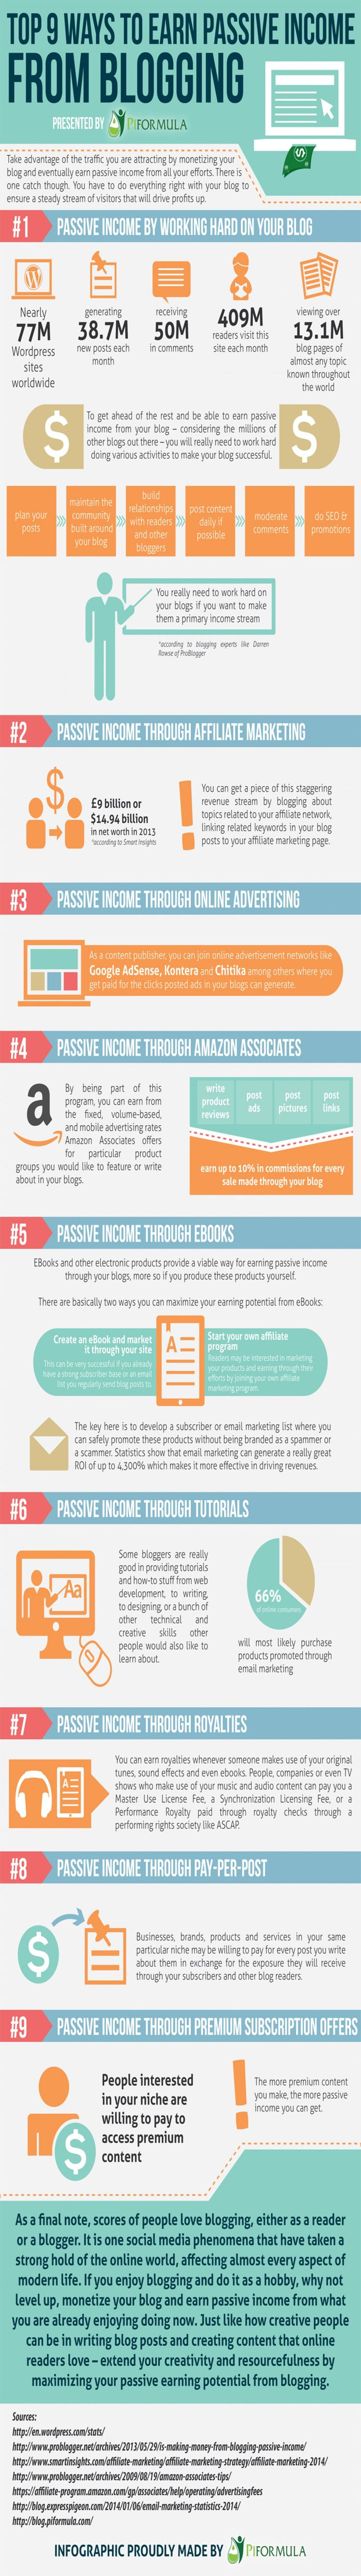 Top 9 Ways to Earn Passive #Income from #Blogging